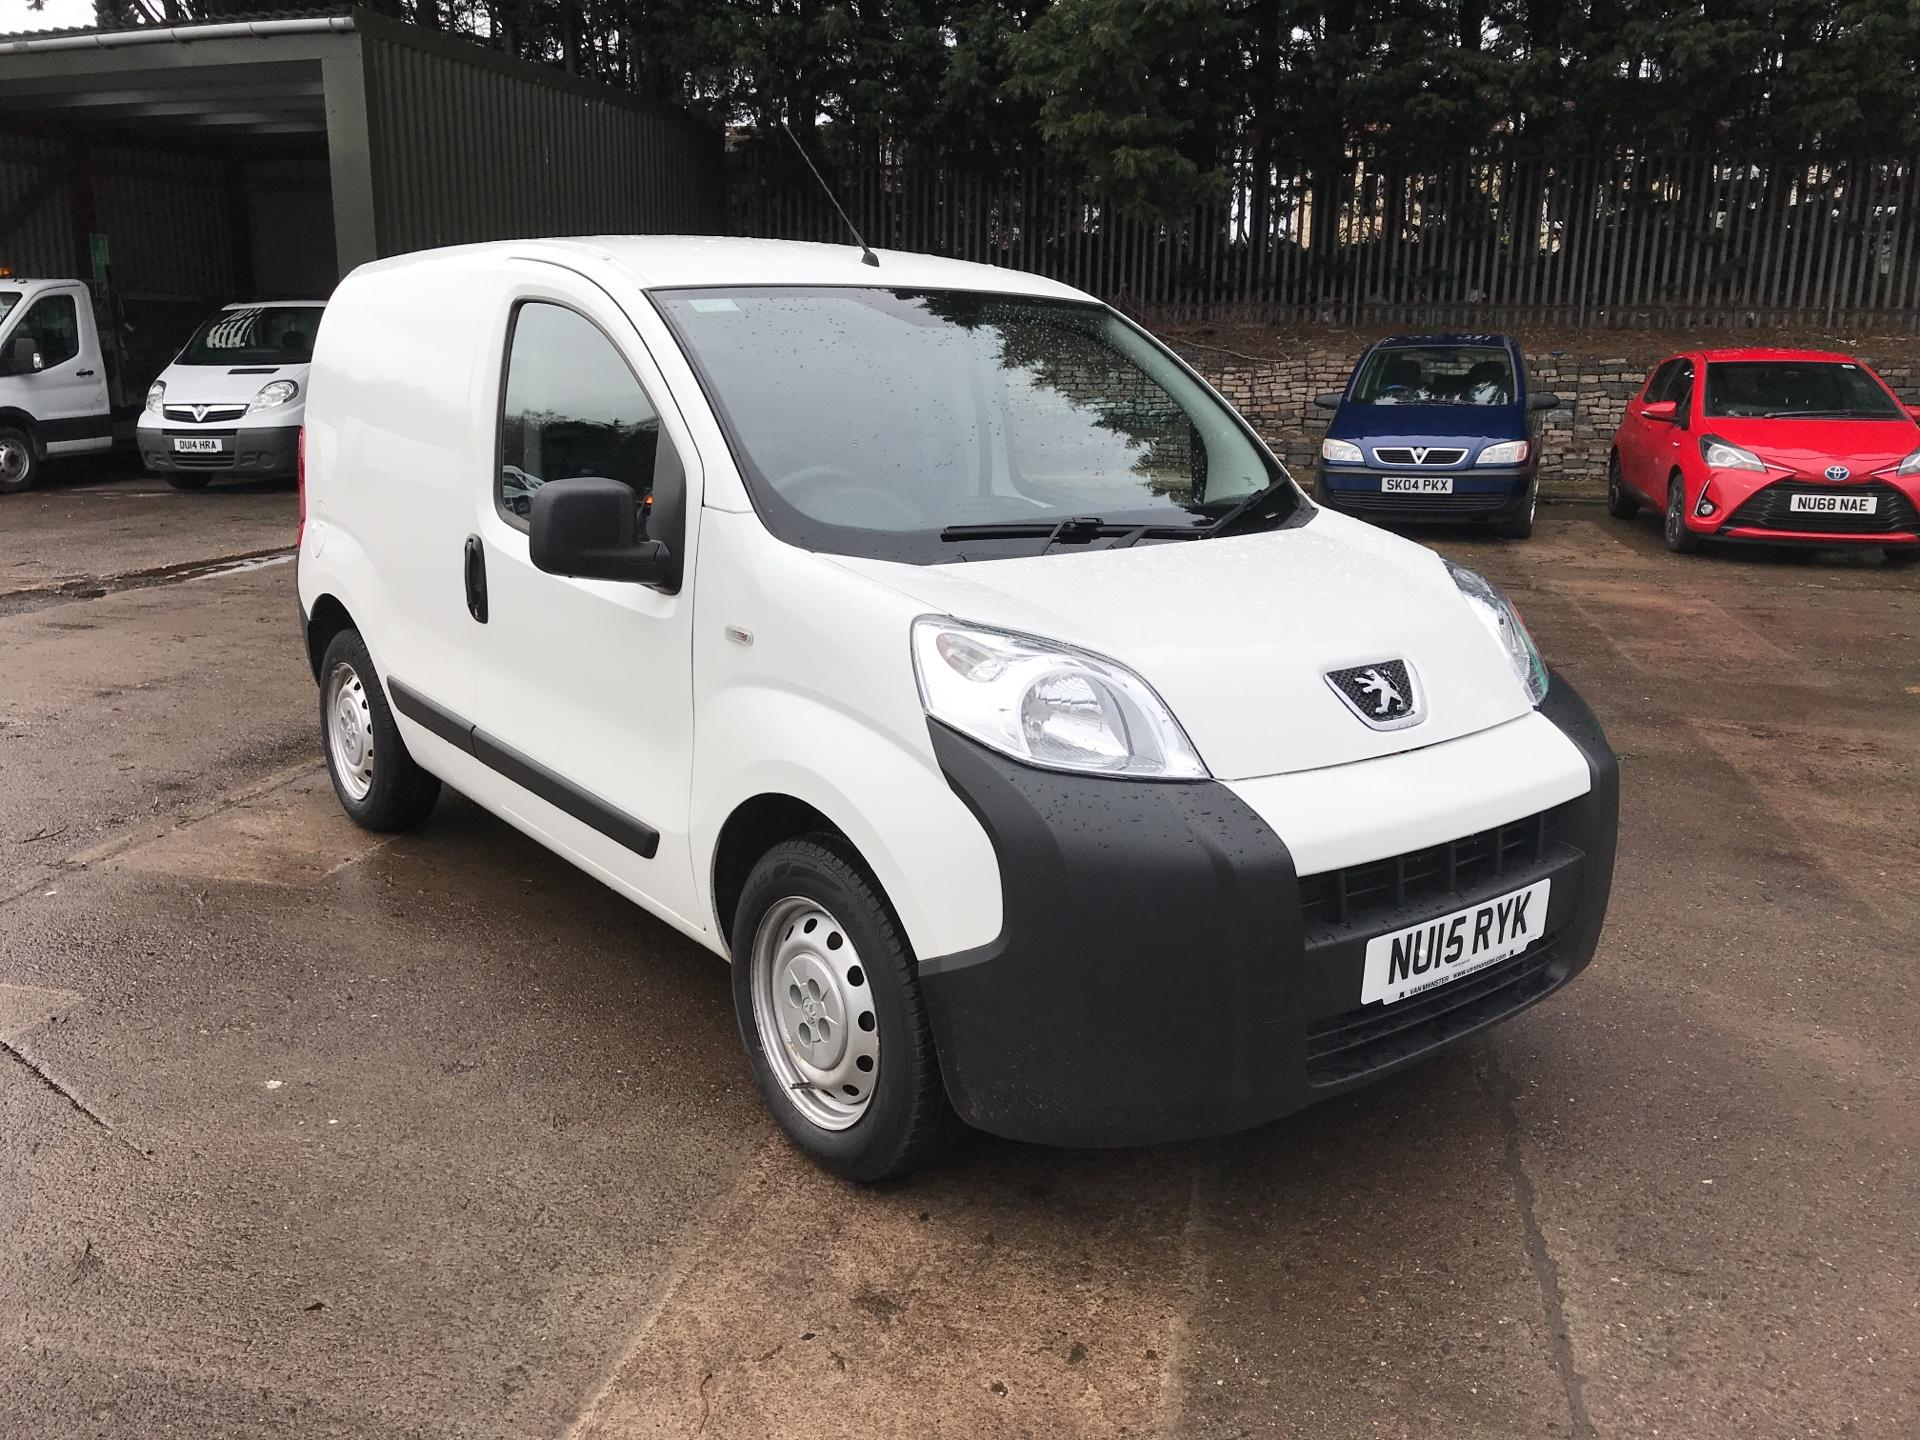 2015 Peugeot Bipper 1.3 HDI 75PS S PLUS PACK NON S/S EURO 5 (NU15RYK)